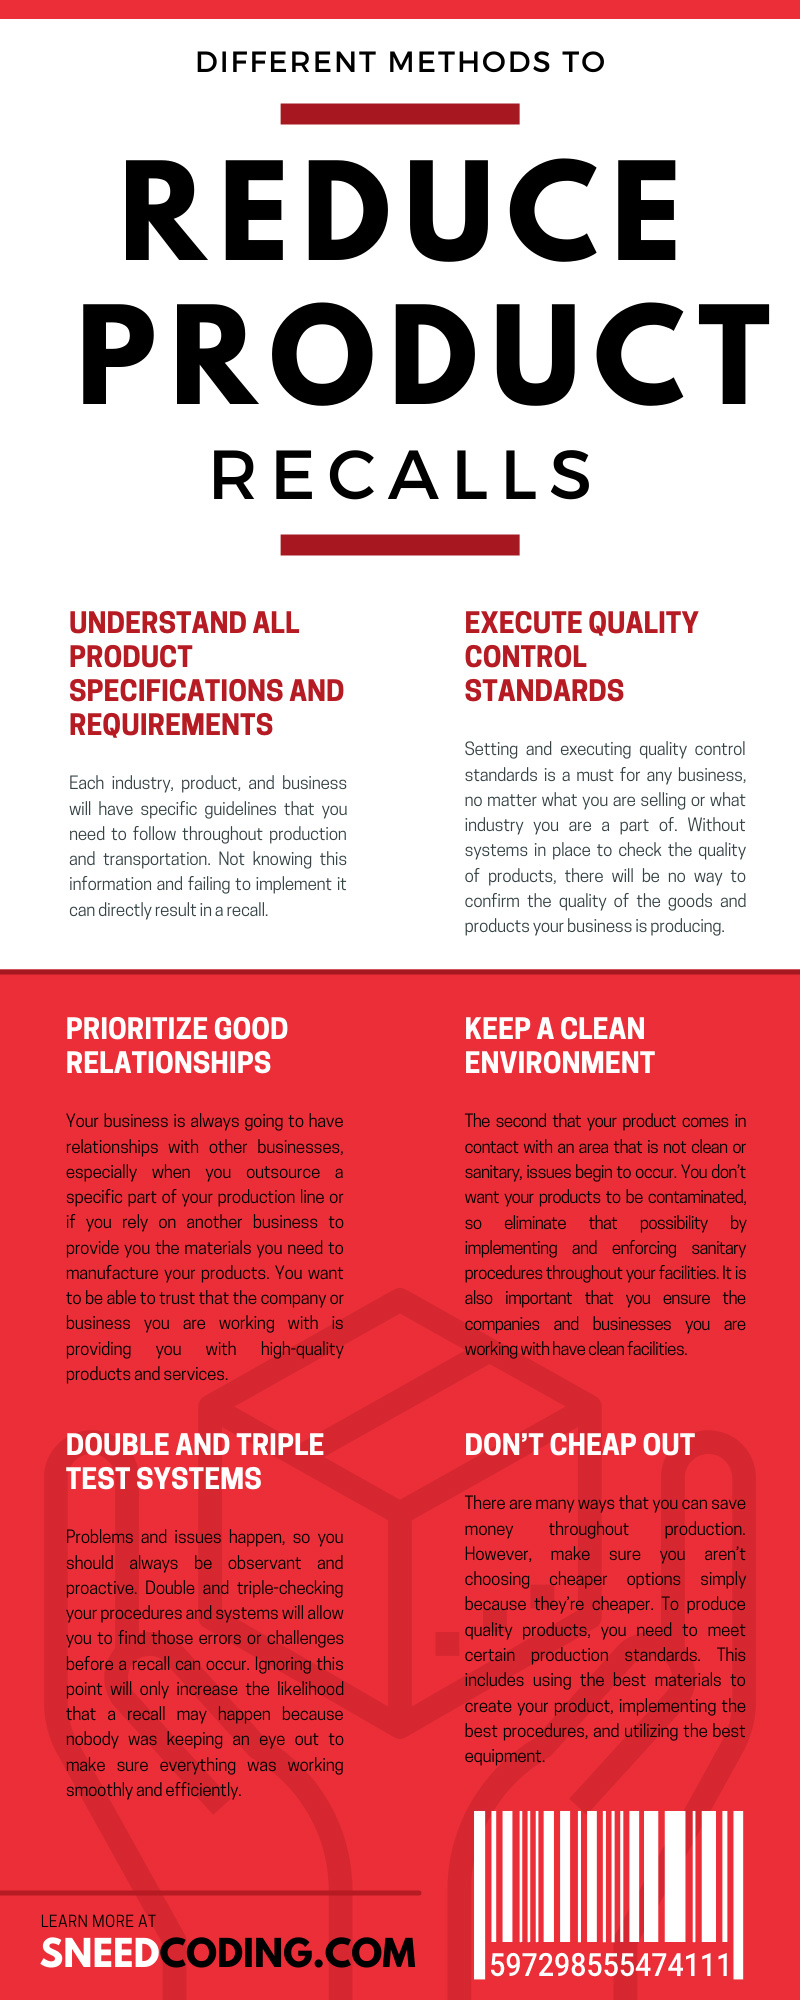 Different Methods To Reduce Product Recalls